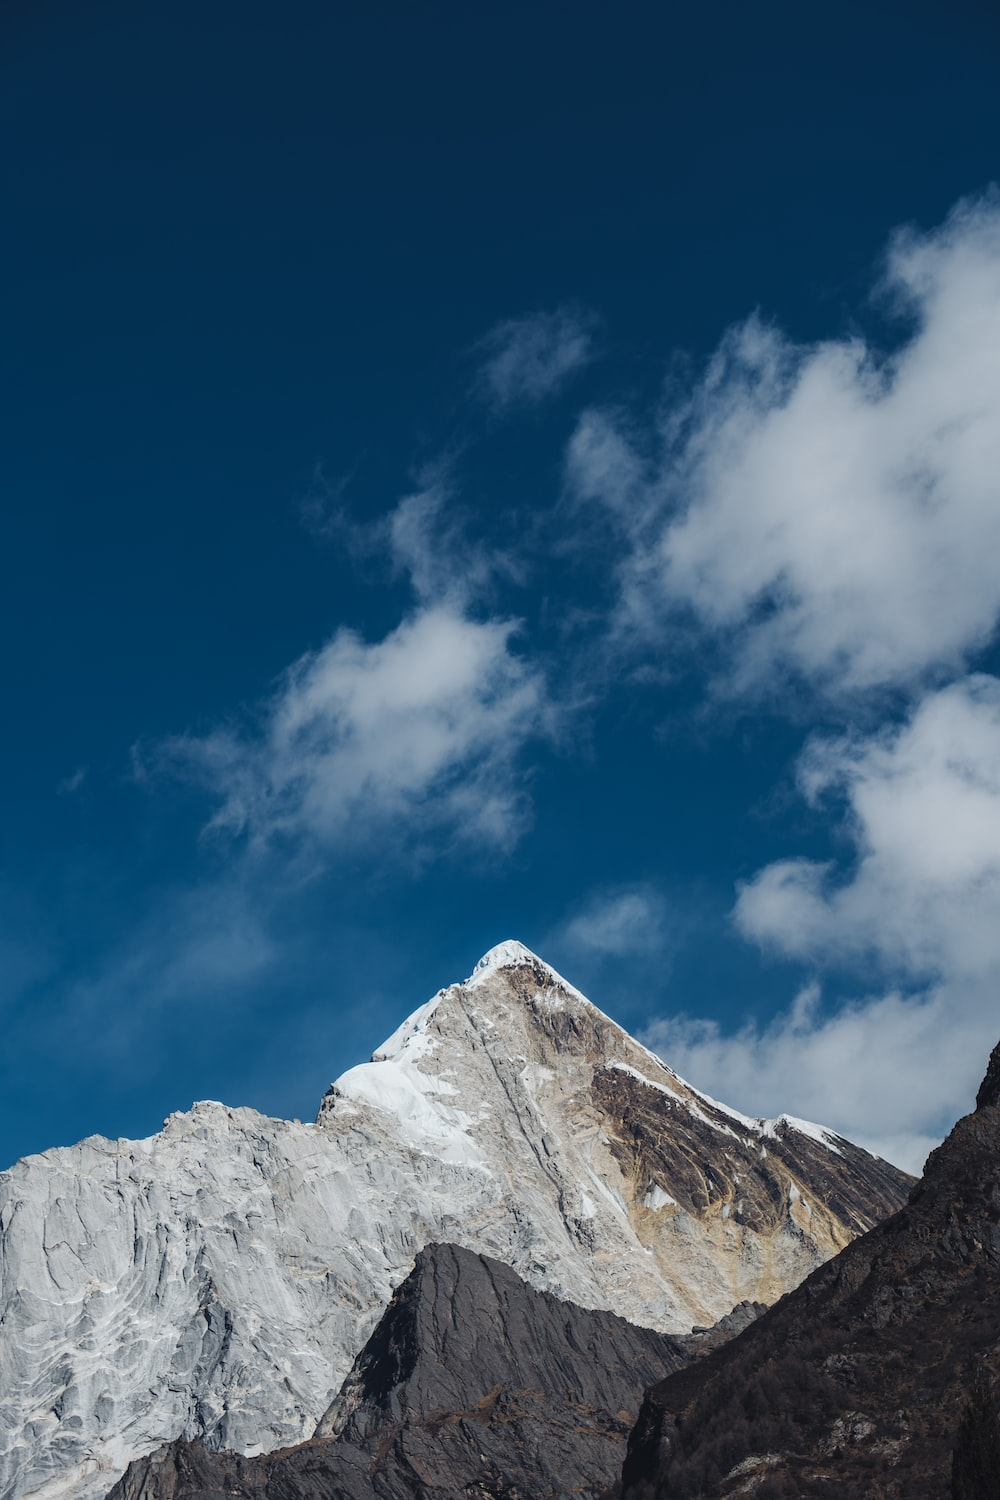 white and gray rocky mountain under blue sky during daytime